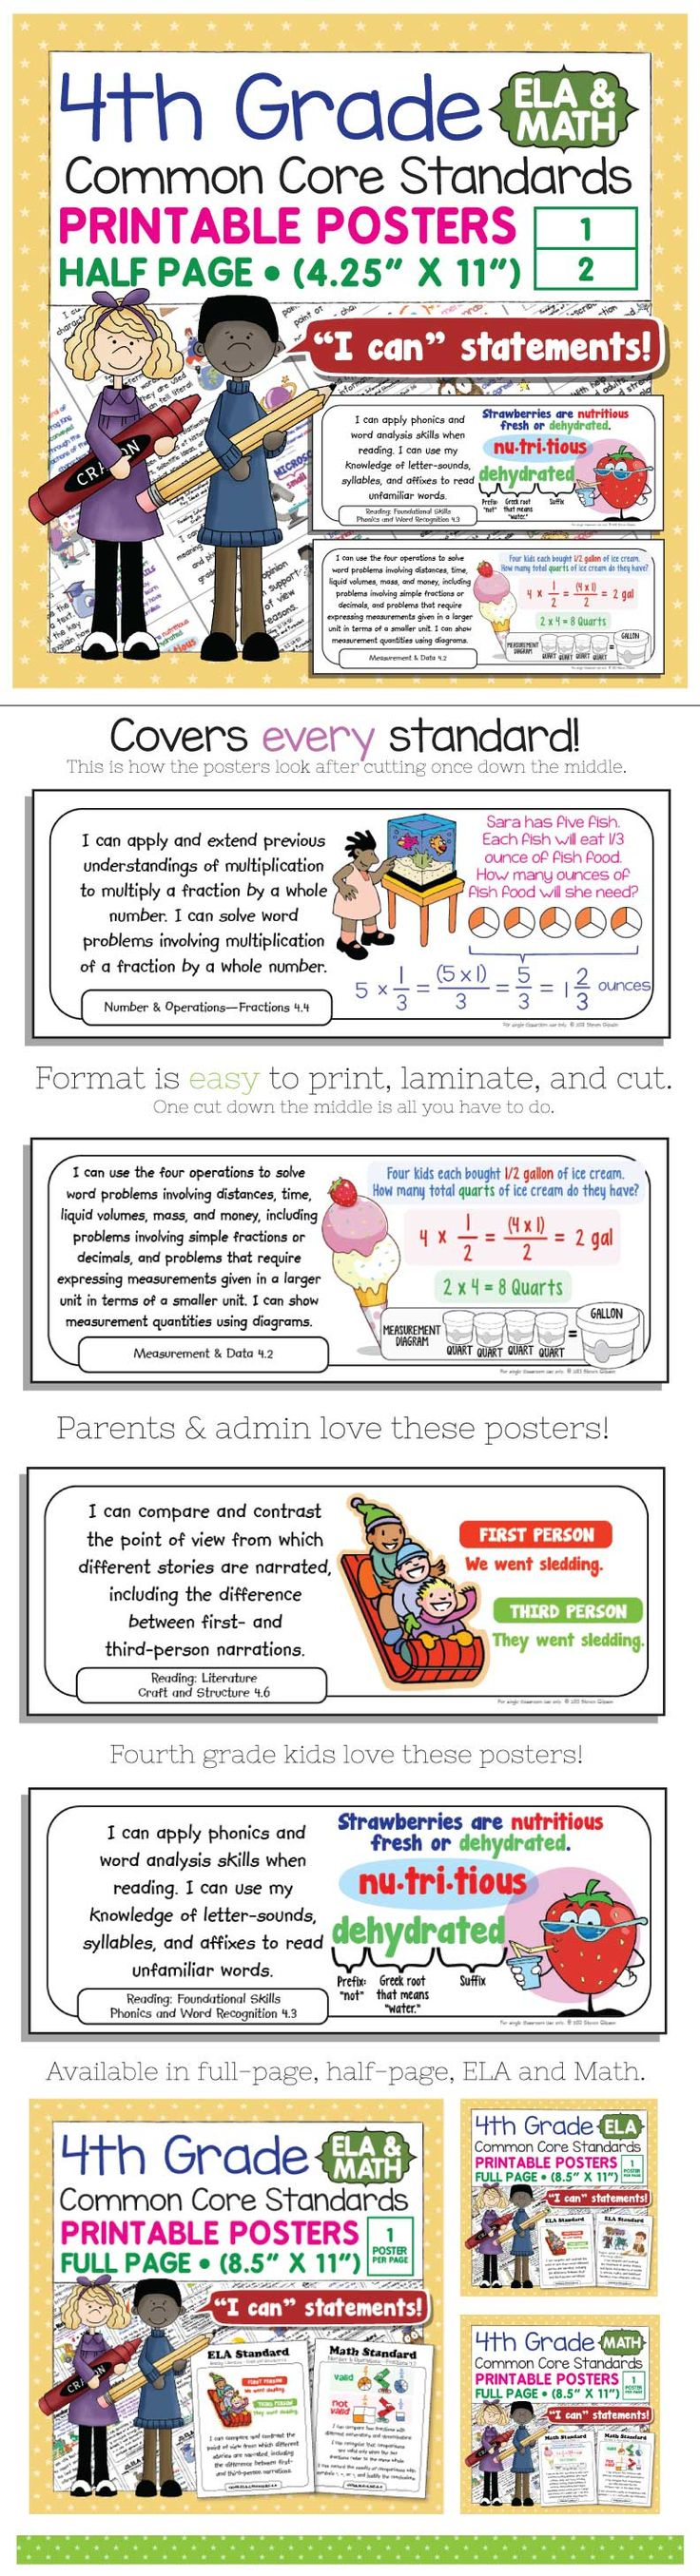 """Bring the Common Core Standards to life with these easy-to-use """"I can"""" posters for fourth grade math. Just print, laminate, cut and hang! This bundle includes posters for every math Standard. Each standard is illustrated to aid comprehension. The illustrations are cute but not babyish - just right for the age range of students in fourth grade classrooms."""